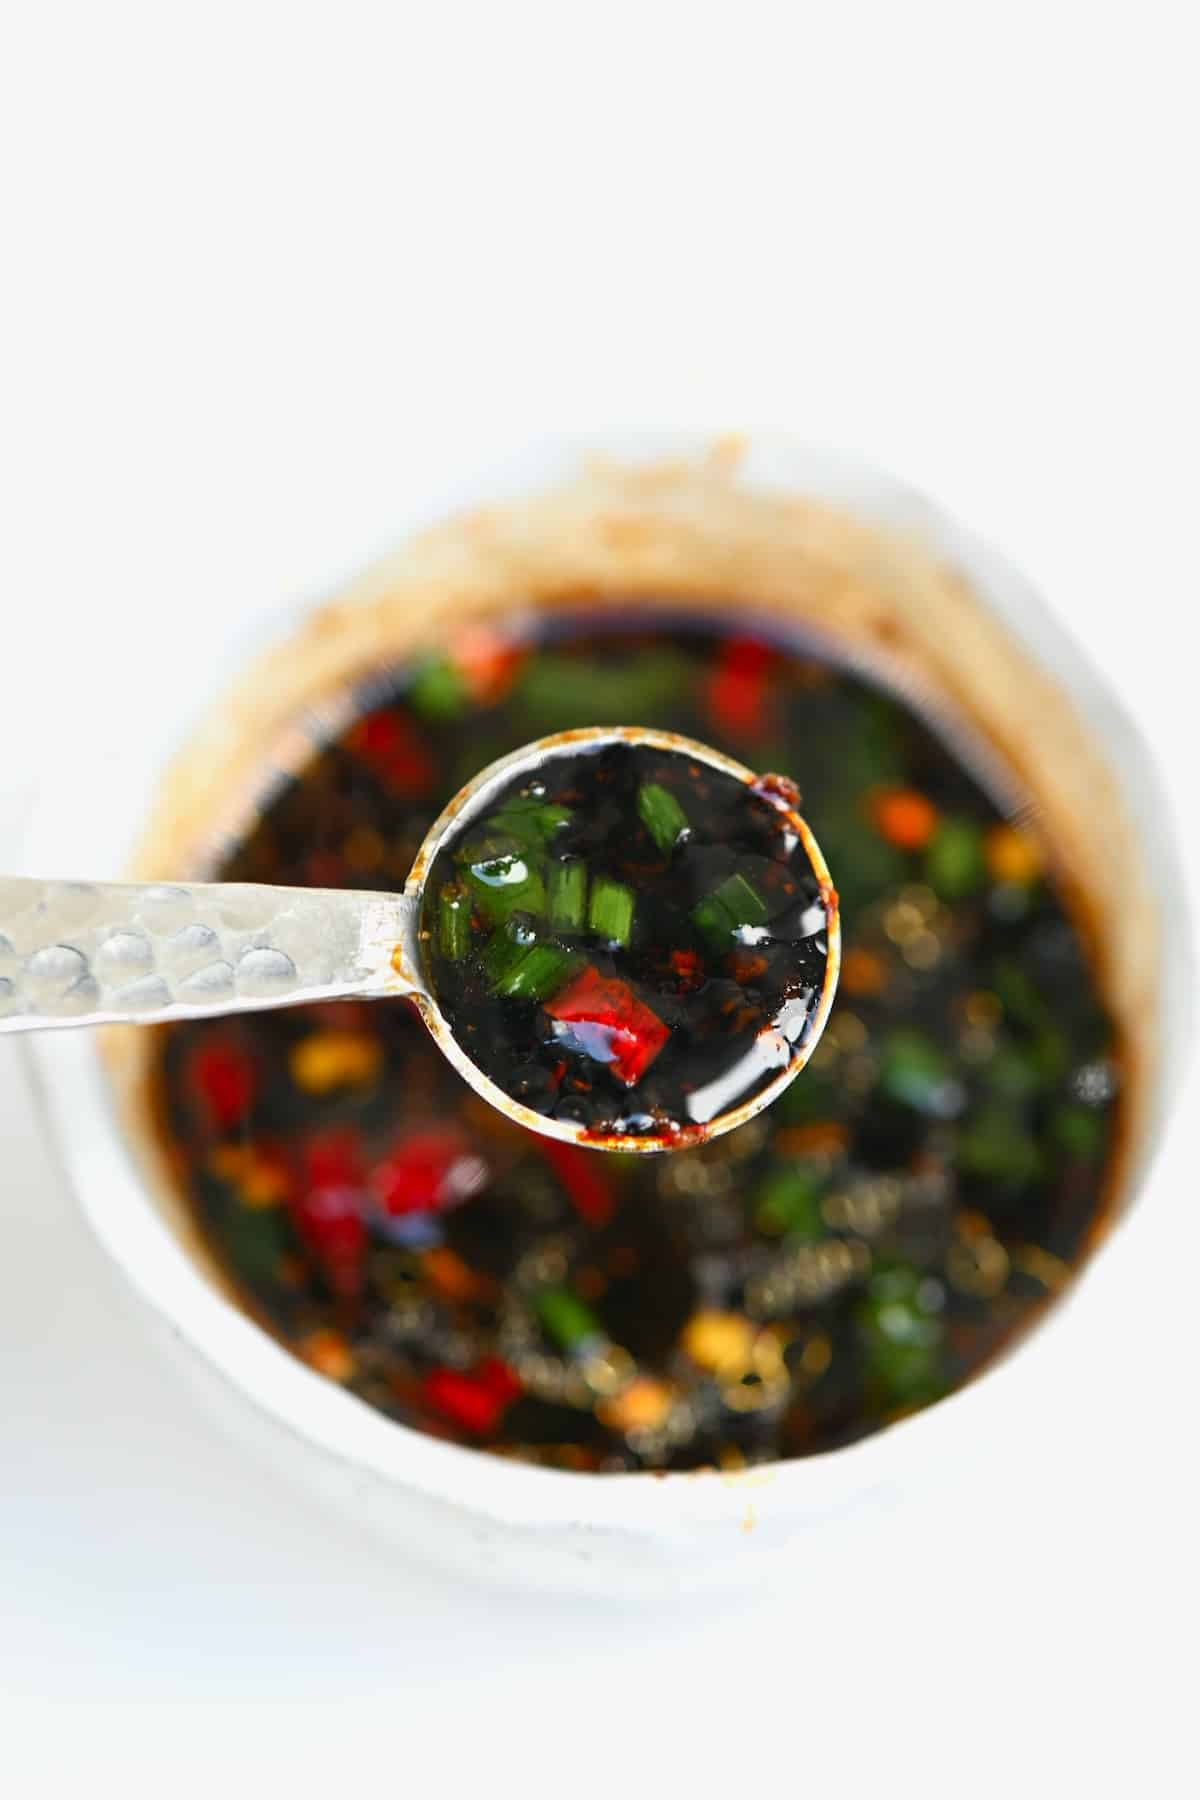 A spoonful of dipping sauce